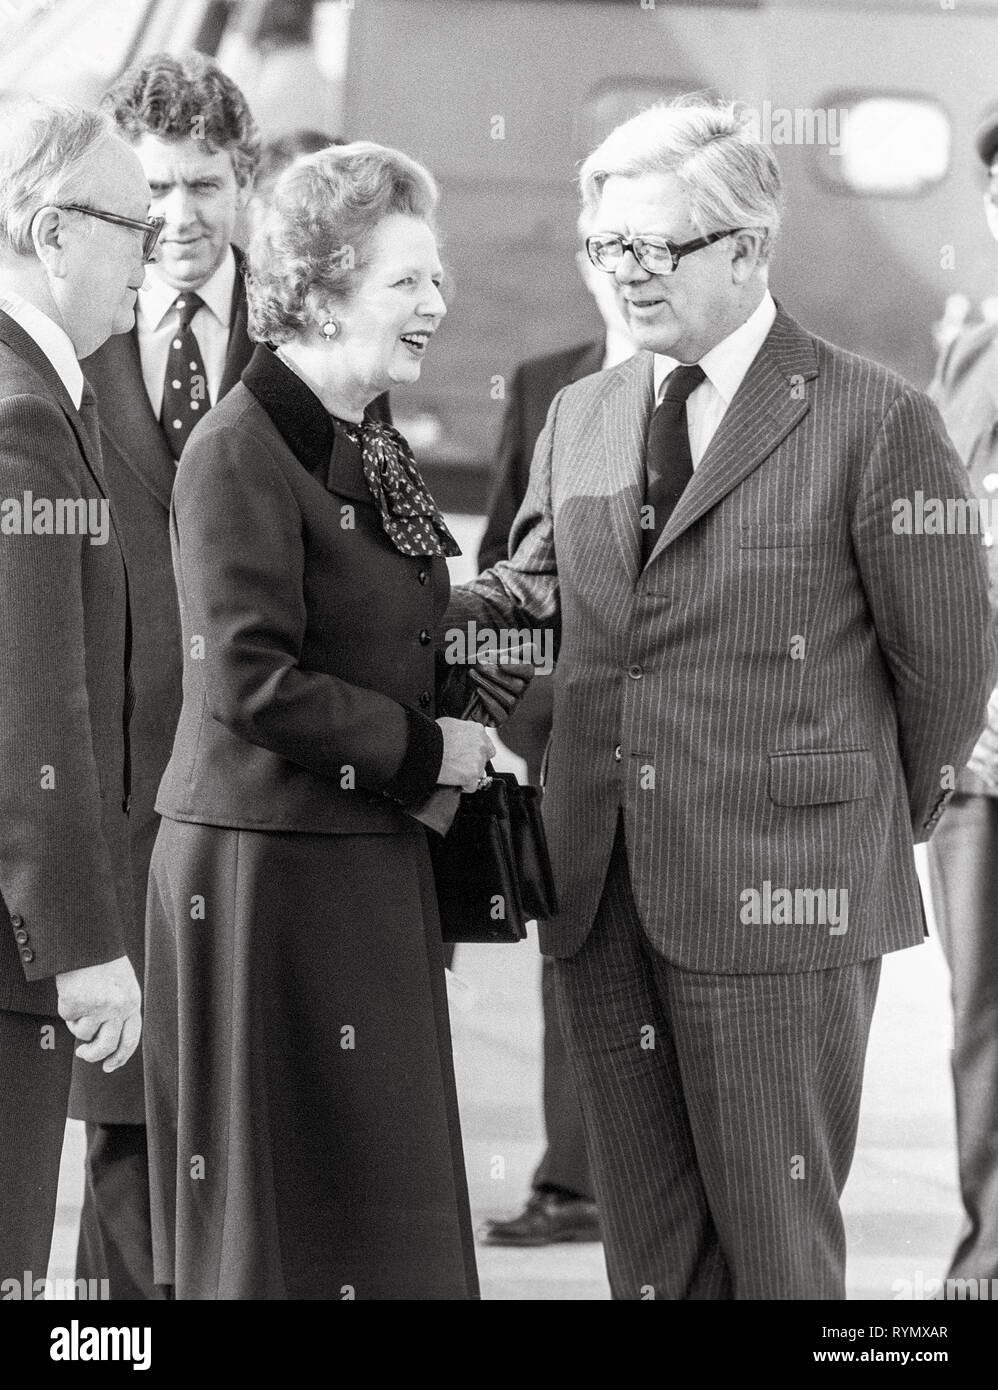 Prime minister Margaret Thatcher leaving London's Heathrow to Moscow with Foreign secretary Geoffrey Howe. - Stock Image